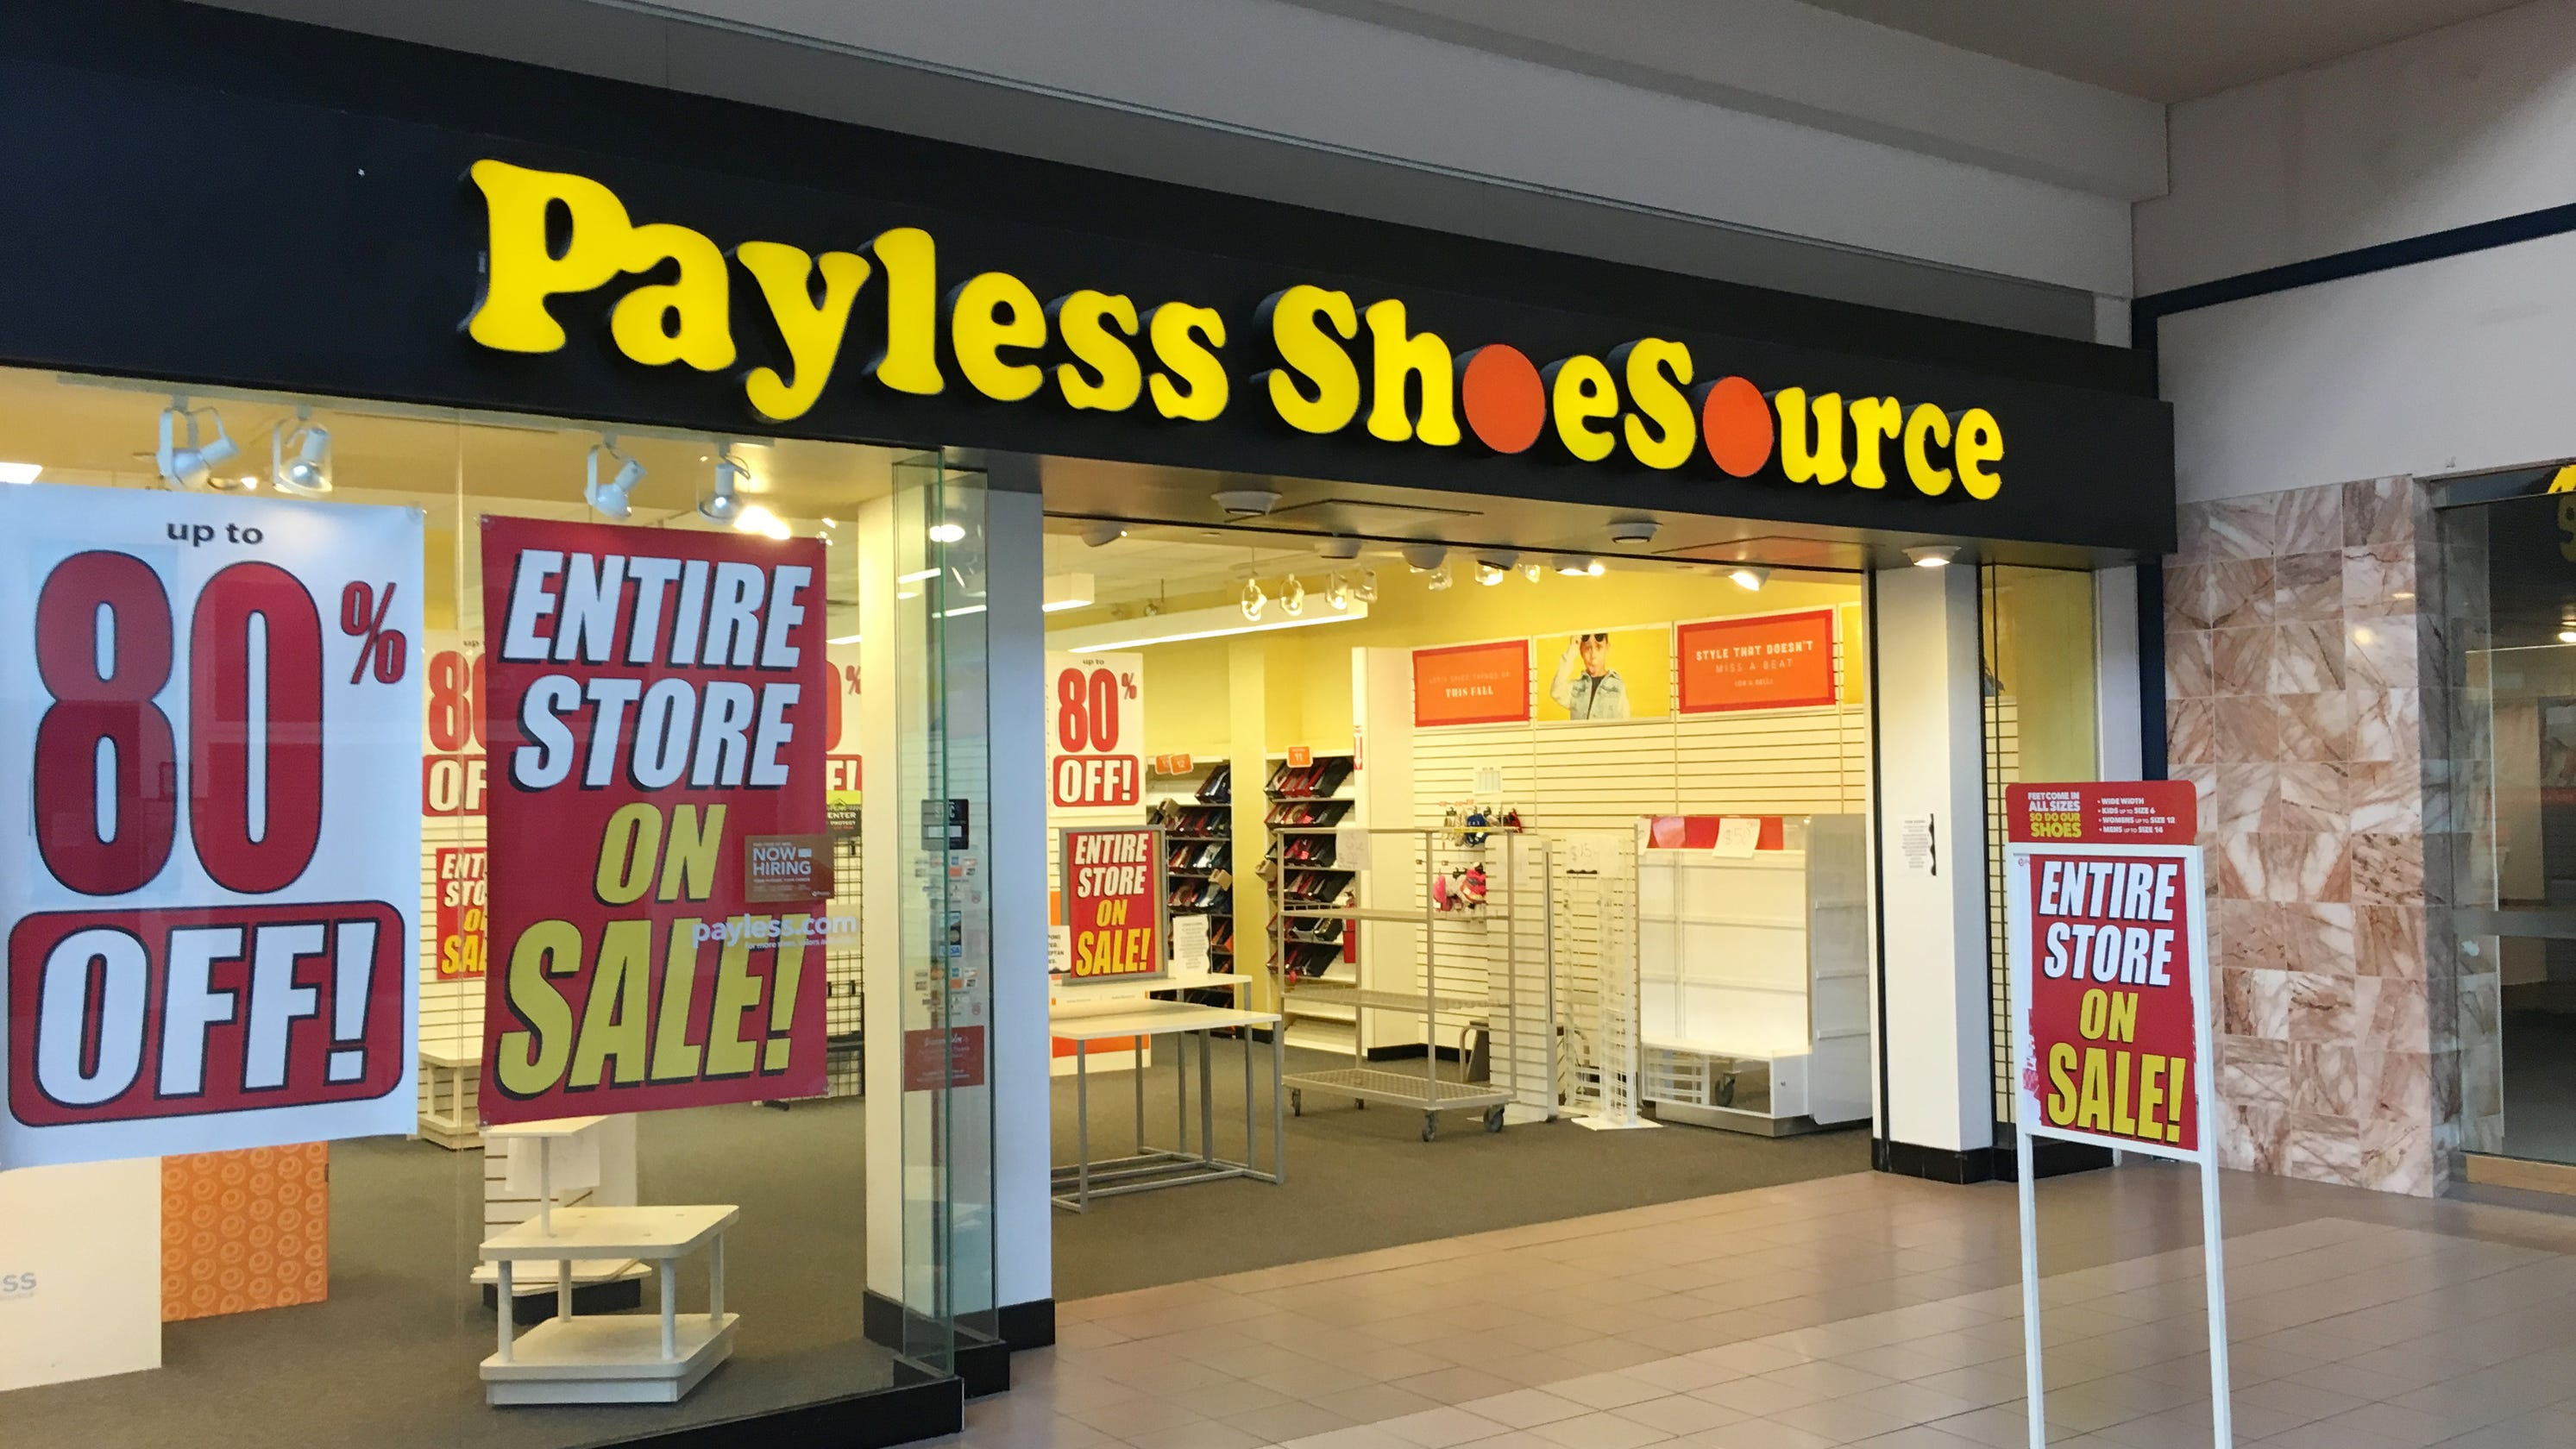 c896e778d Payless ShoeSource  All U.S. stores liquidating and closing